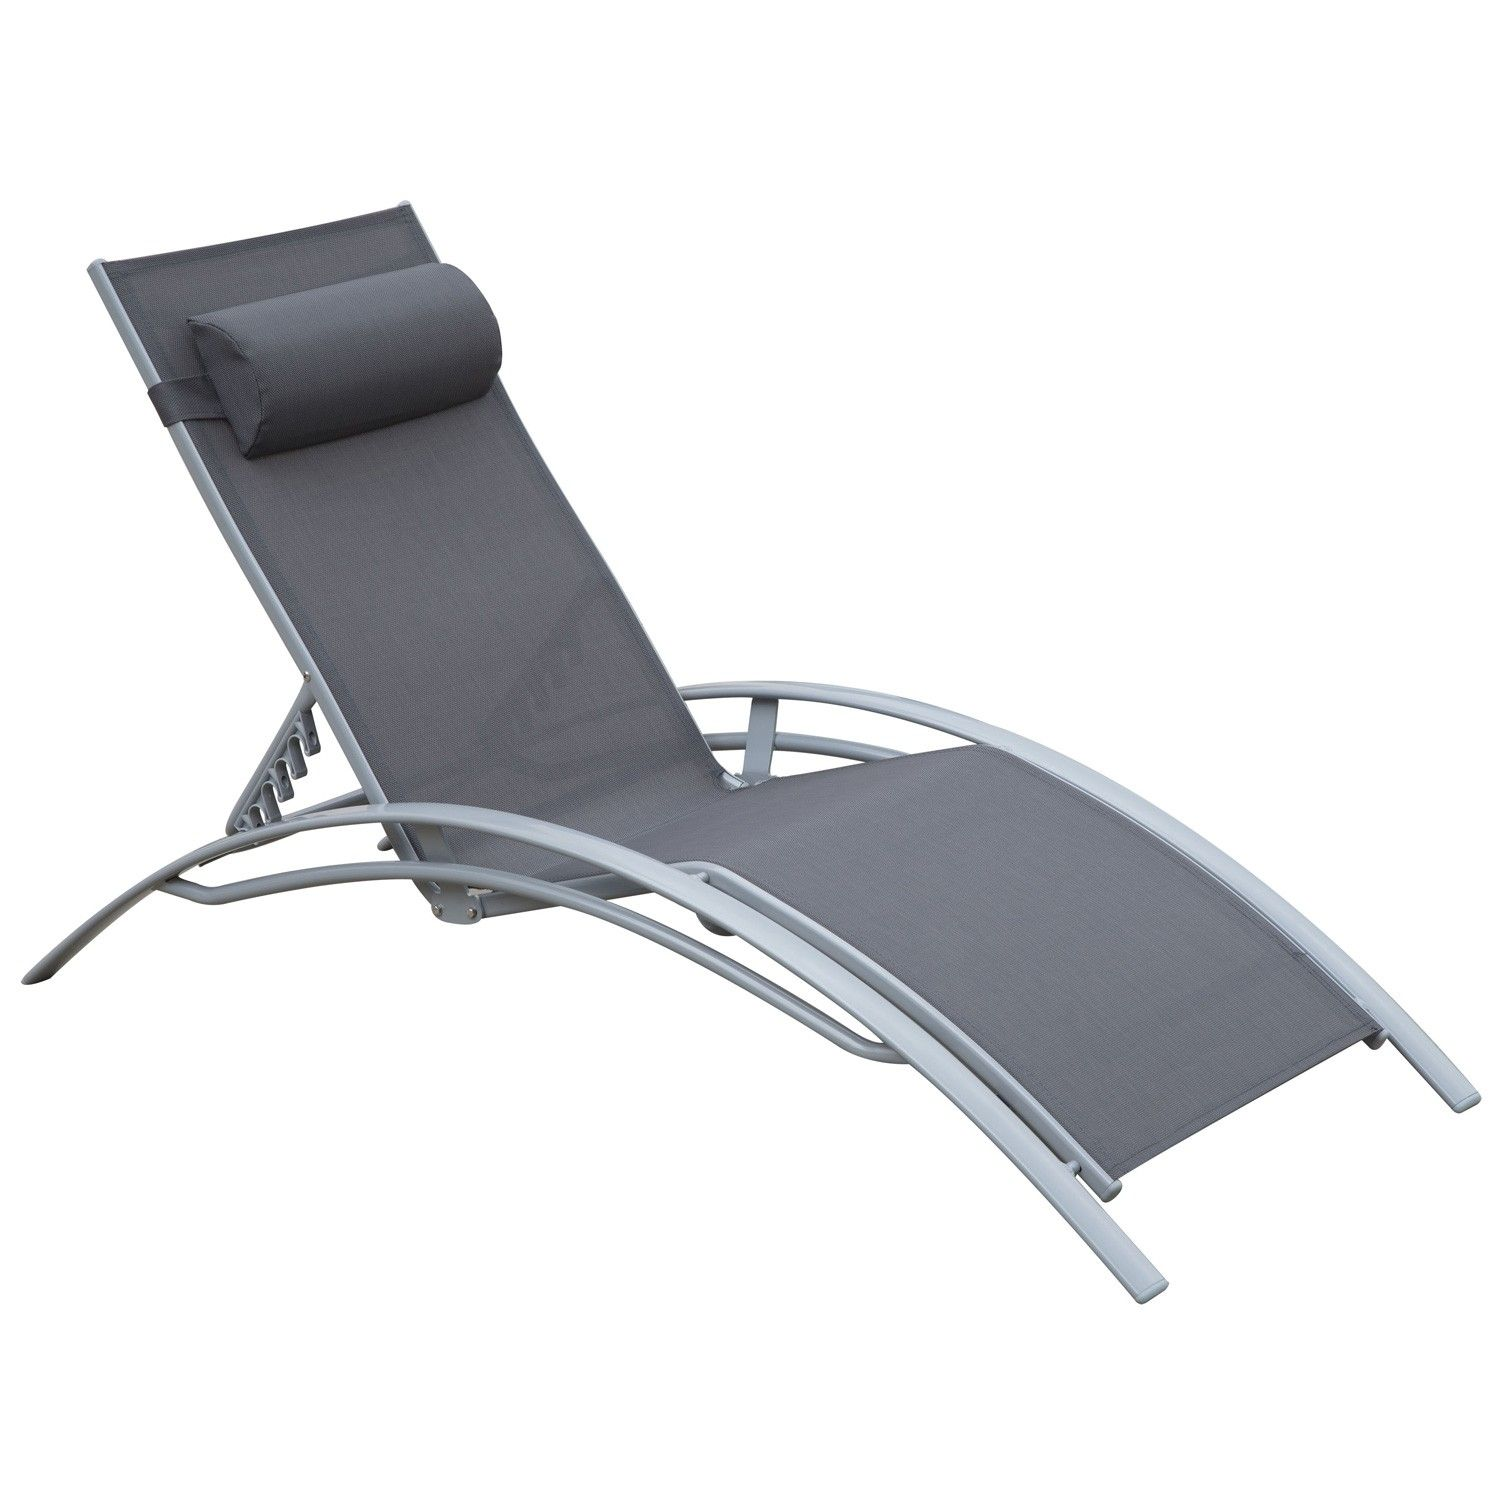 Teakholz Chaise Lounge Sessel Lounge Sessel - Lounge Sessel Holz Outdoor